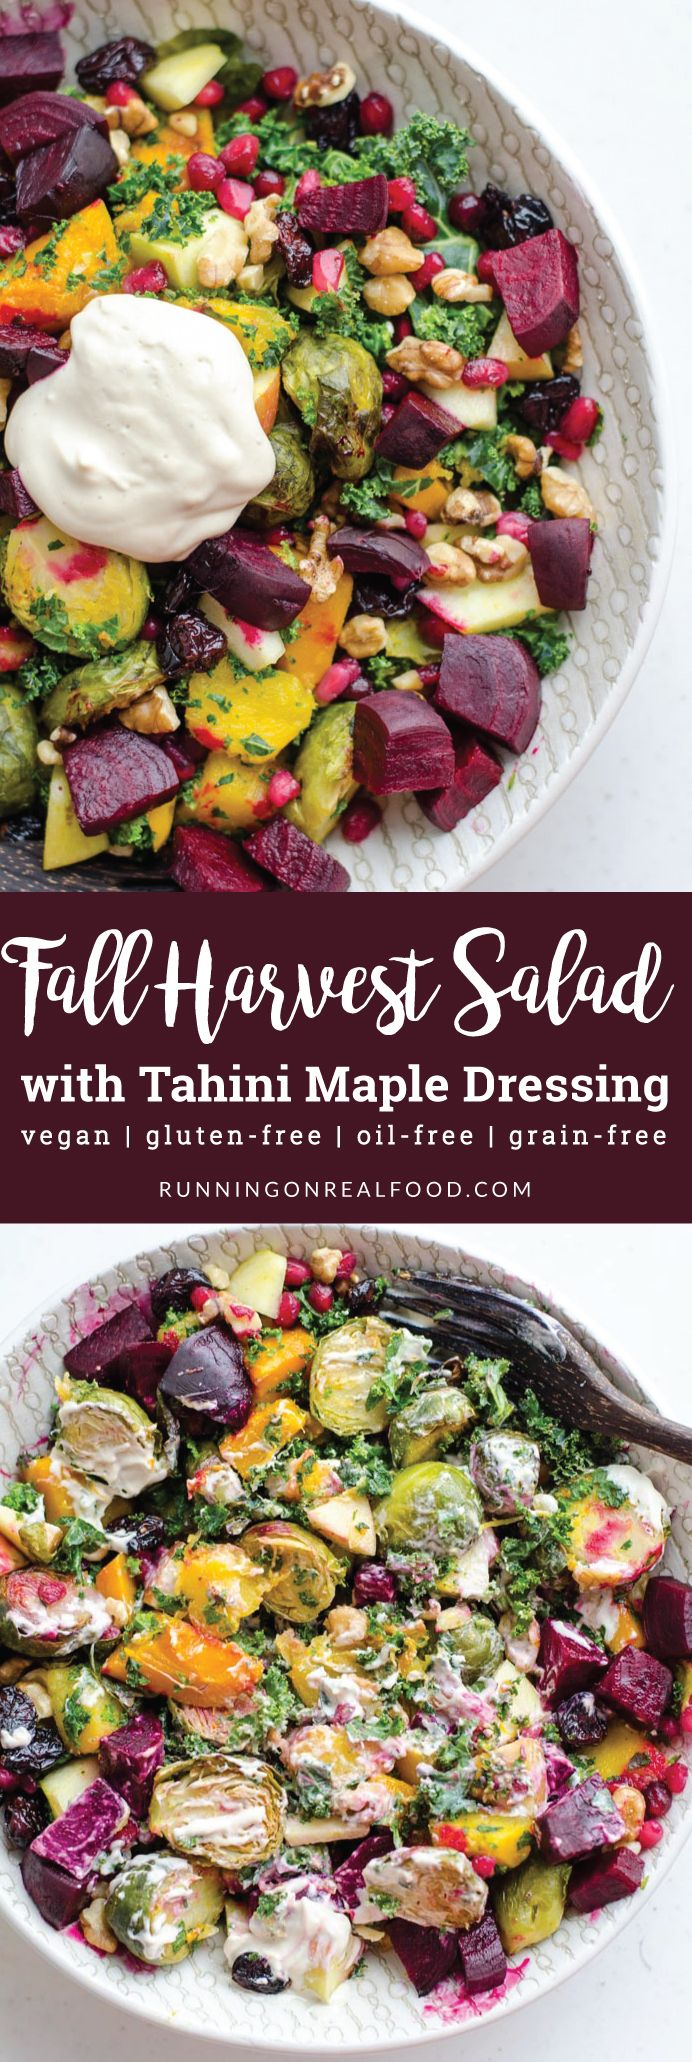 This beautiful, vegan Fall Harvest Salad with Tahini Maple Dressing features all the best Fall ingredients: brussel sprouts, squash, kale, beets, pomegranate, cranberries and apple. Gluten-free, oil-free.